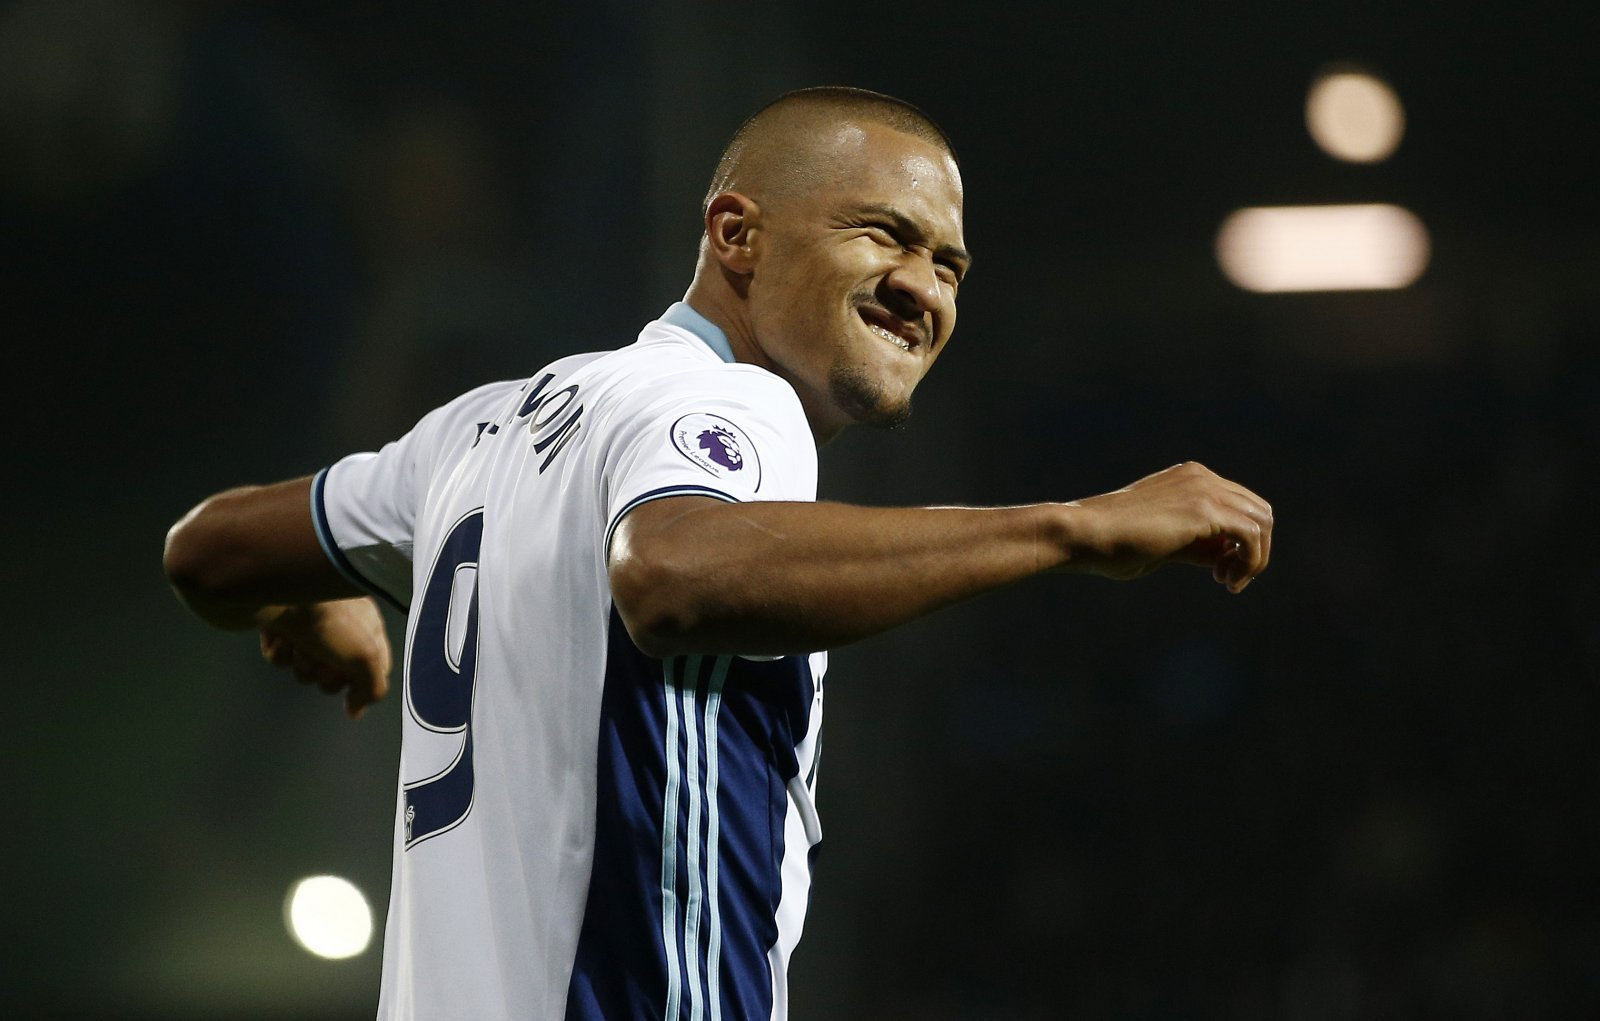 West Brom need to build around the excellent Salomon Rondon